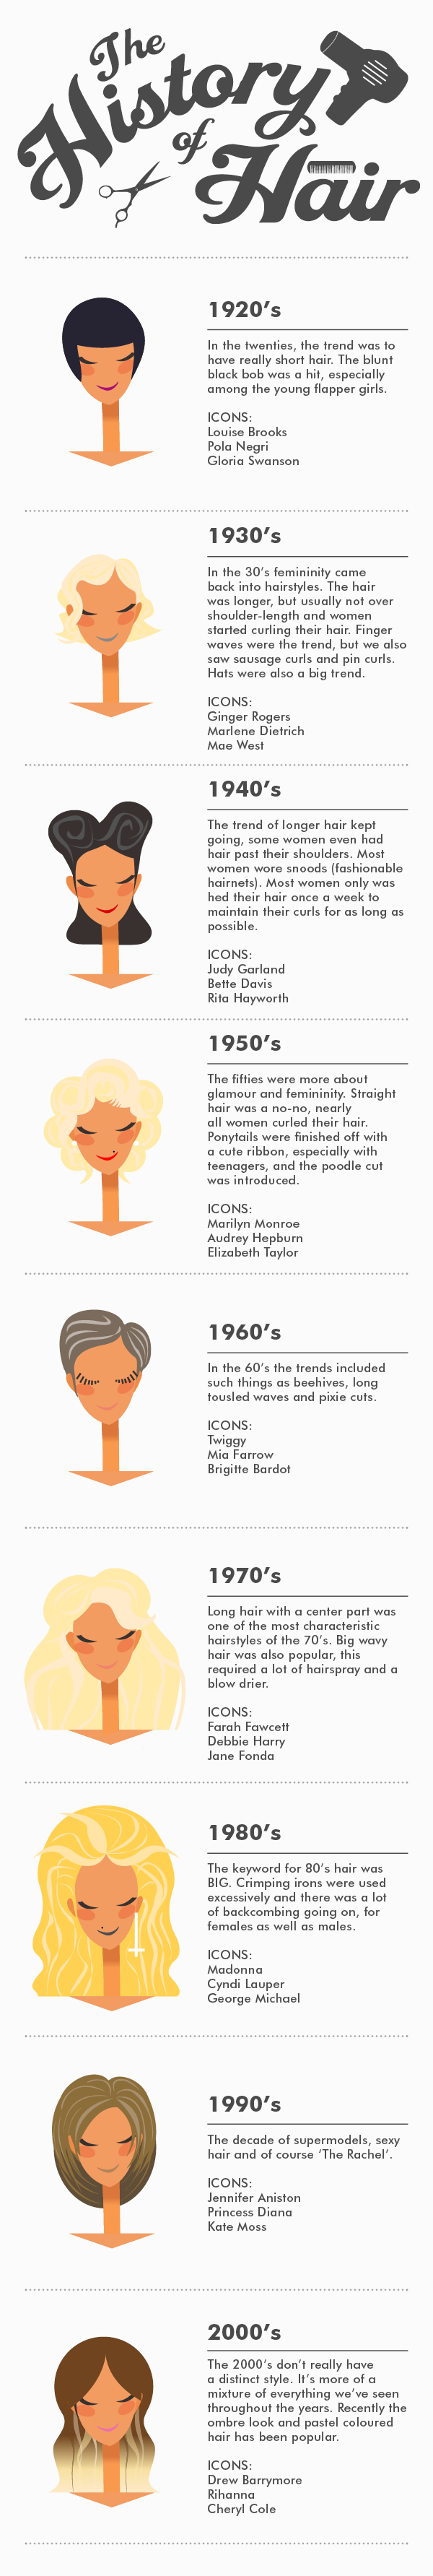 The History Of Hair timeline infographic by decade from 1920s to 2000s